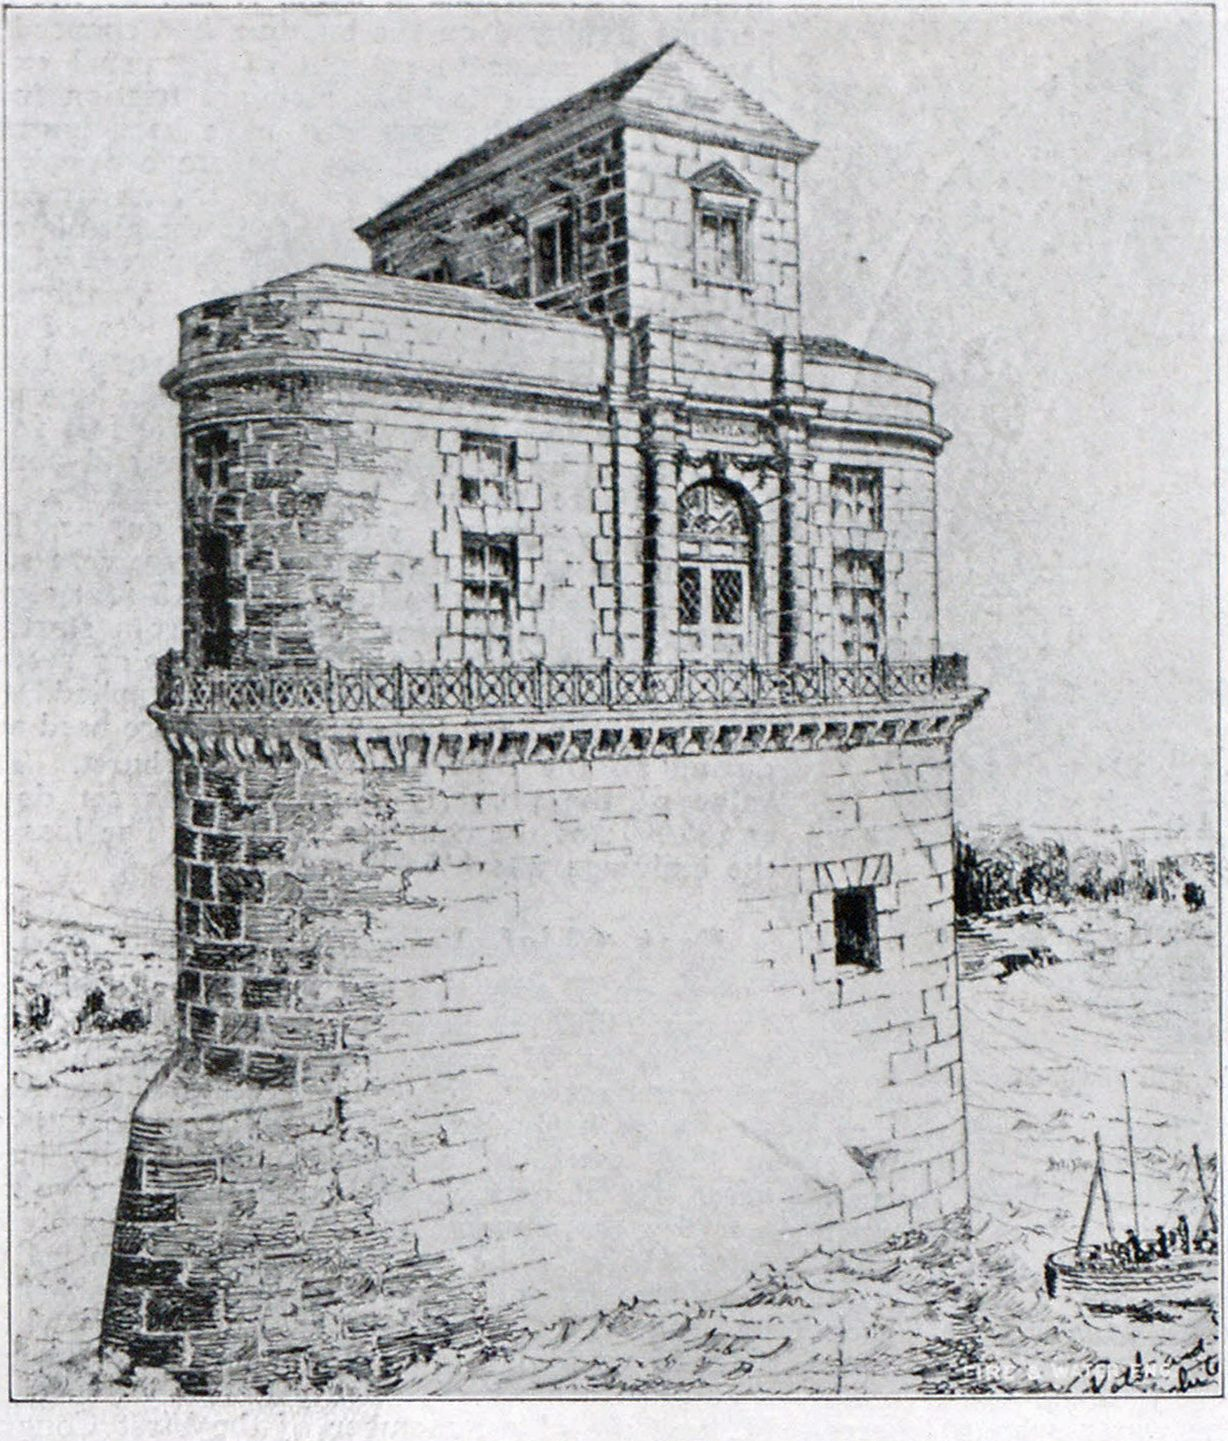 NEW INTAKE TOWER AT CHAIN OF ROCKS, ST. LOUIS WATER WORKS, TO COST $450,000.